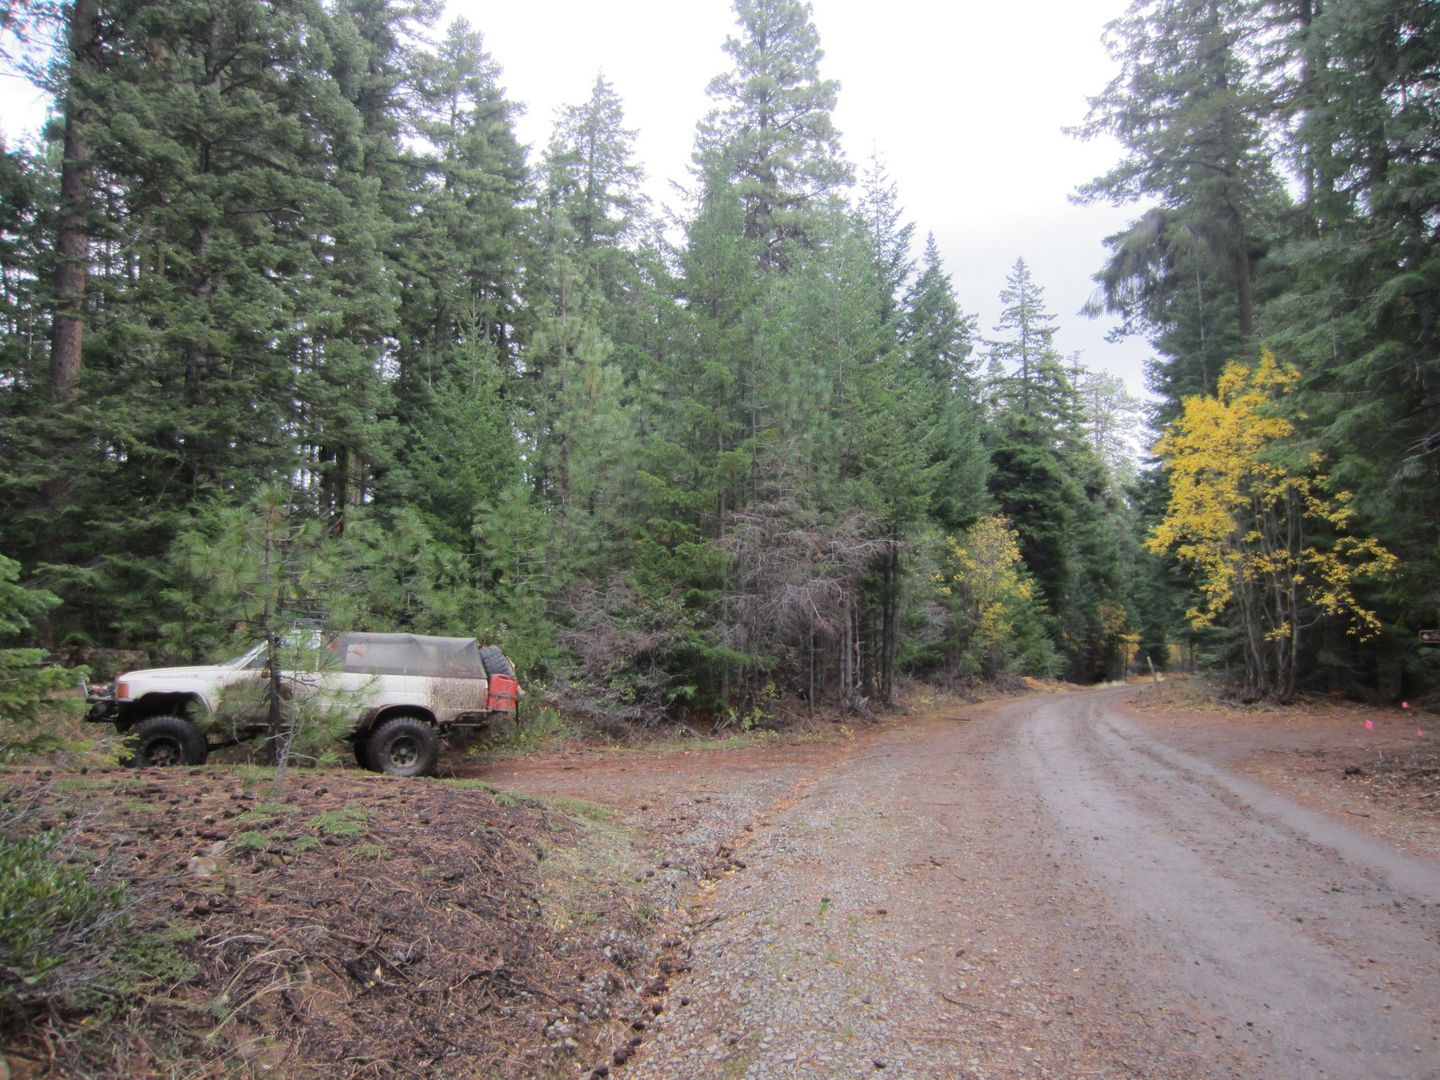 Barlow Trail - Waypoint 10: Continue Straight